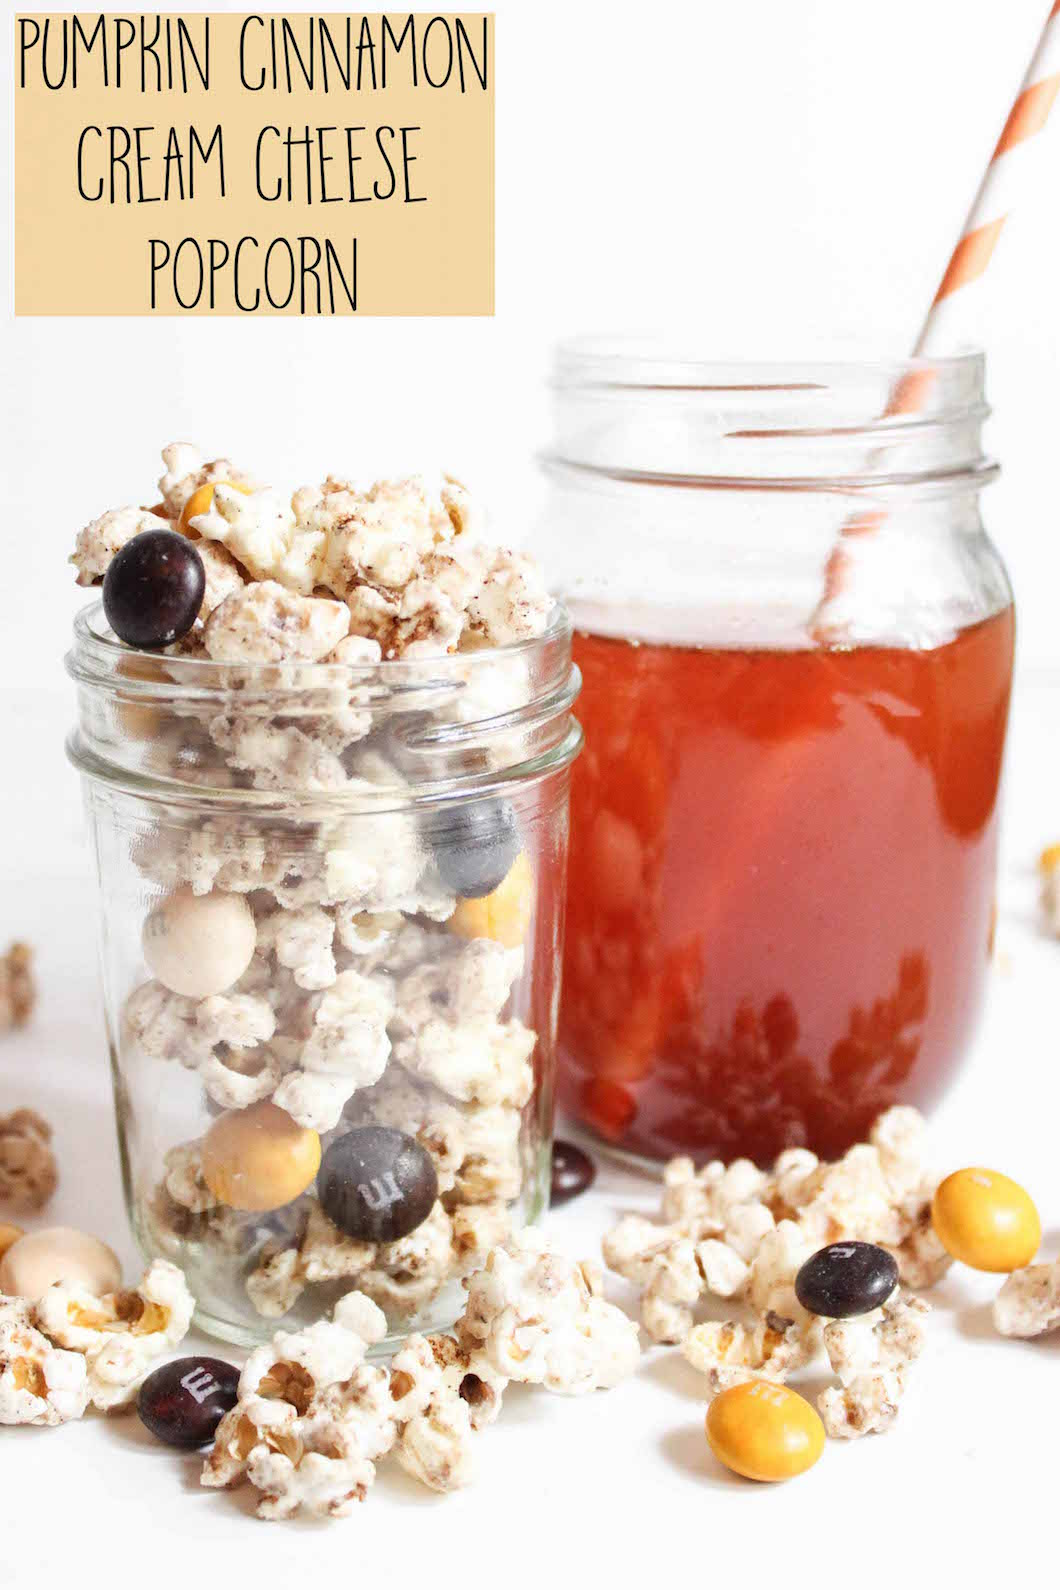 Pumpkin Cinnamon Cream Cheese Popcorn Recipe